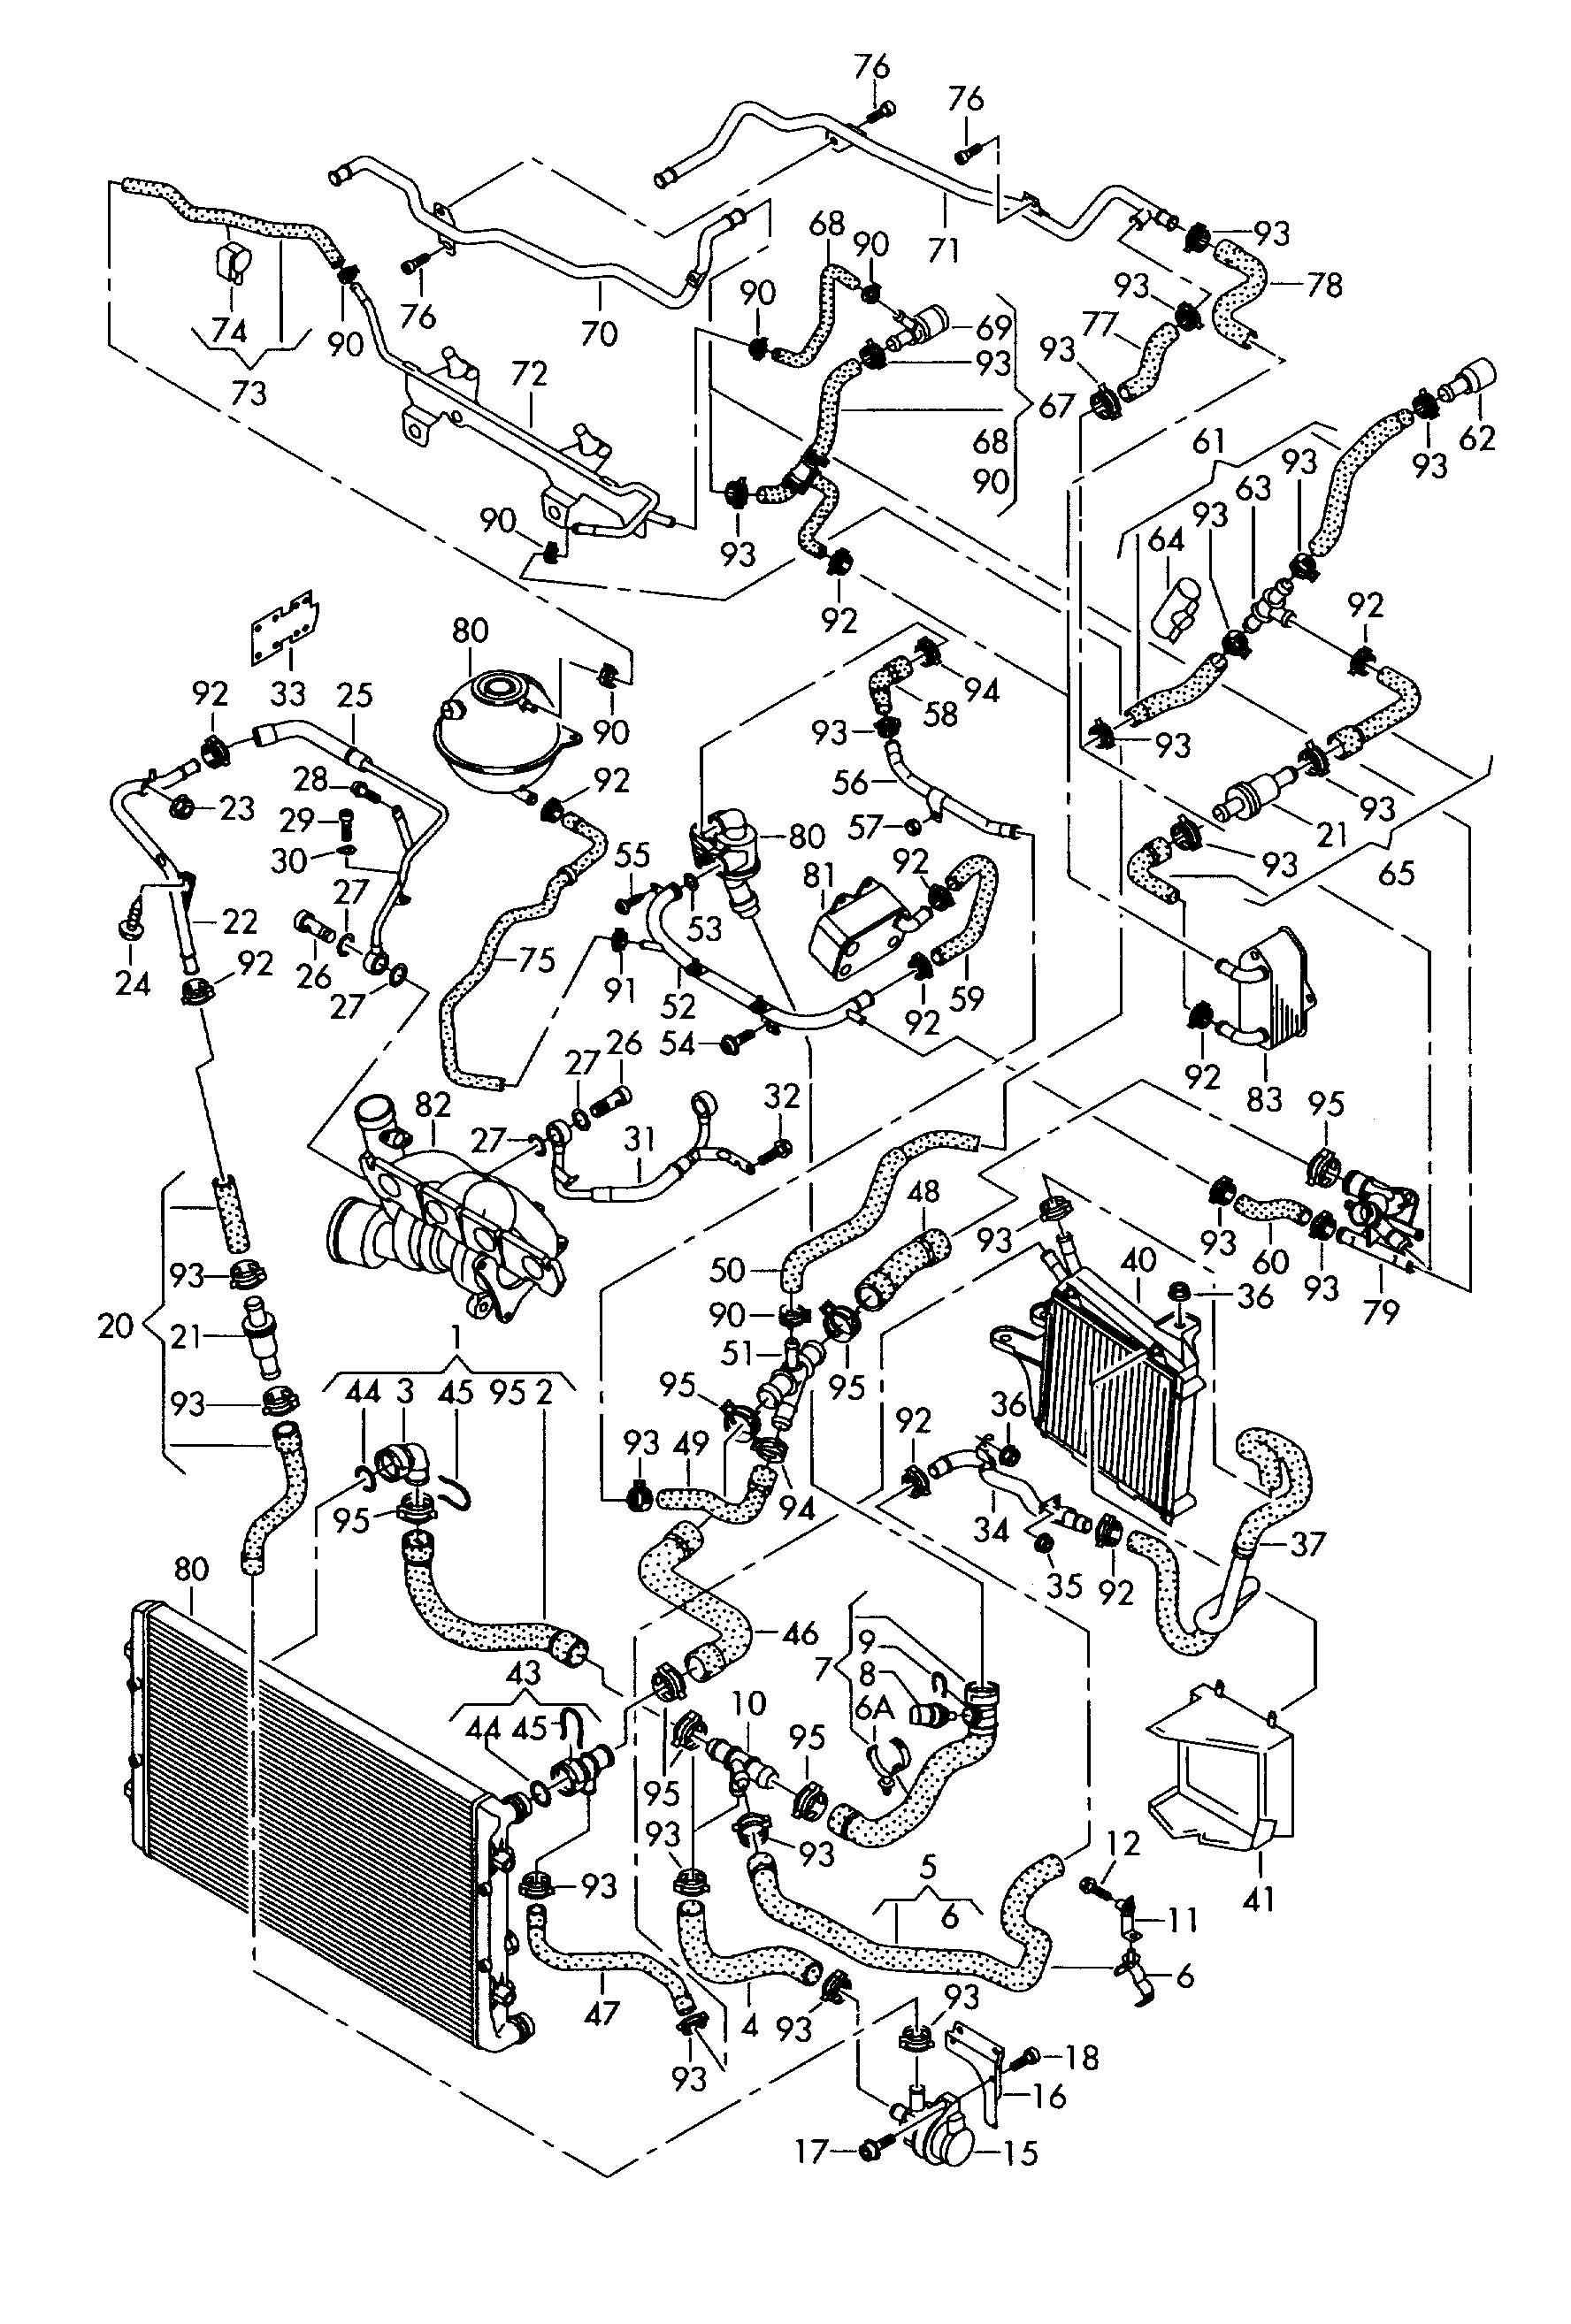 2001 Volkswagen Jetta Belt Diagram Guide And Troubleshooting Of Timing Vw Routan Engine Coolant Free Image For User Replacement Serpentine